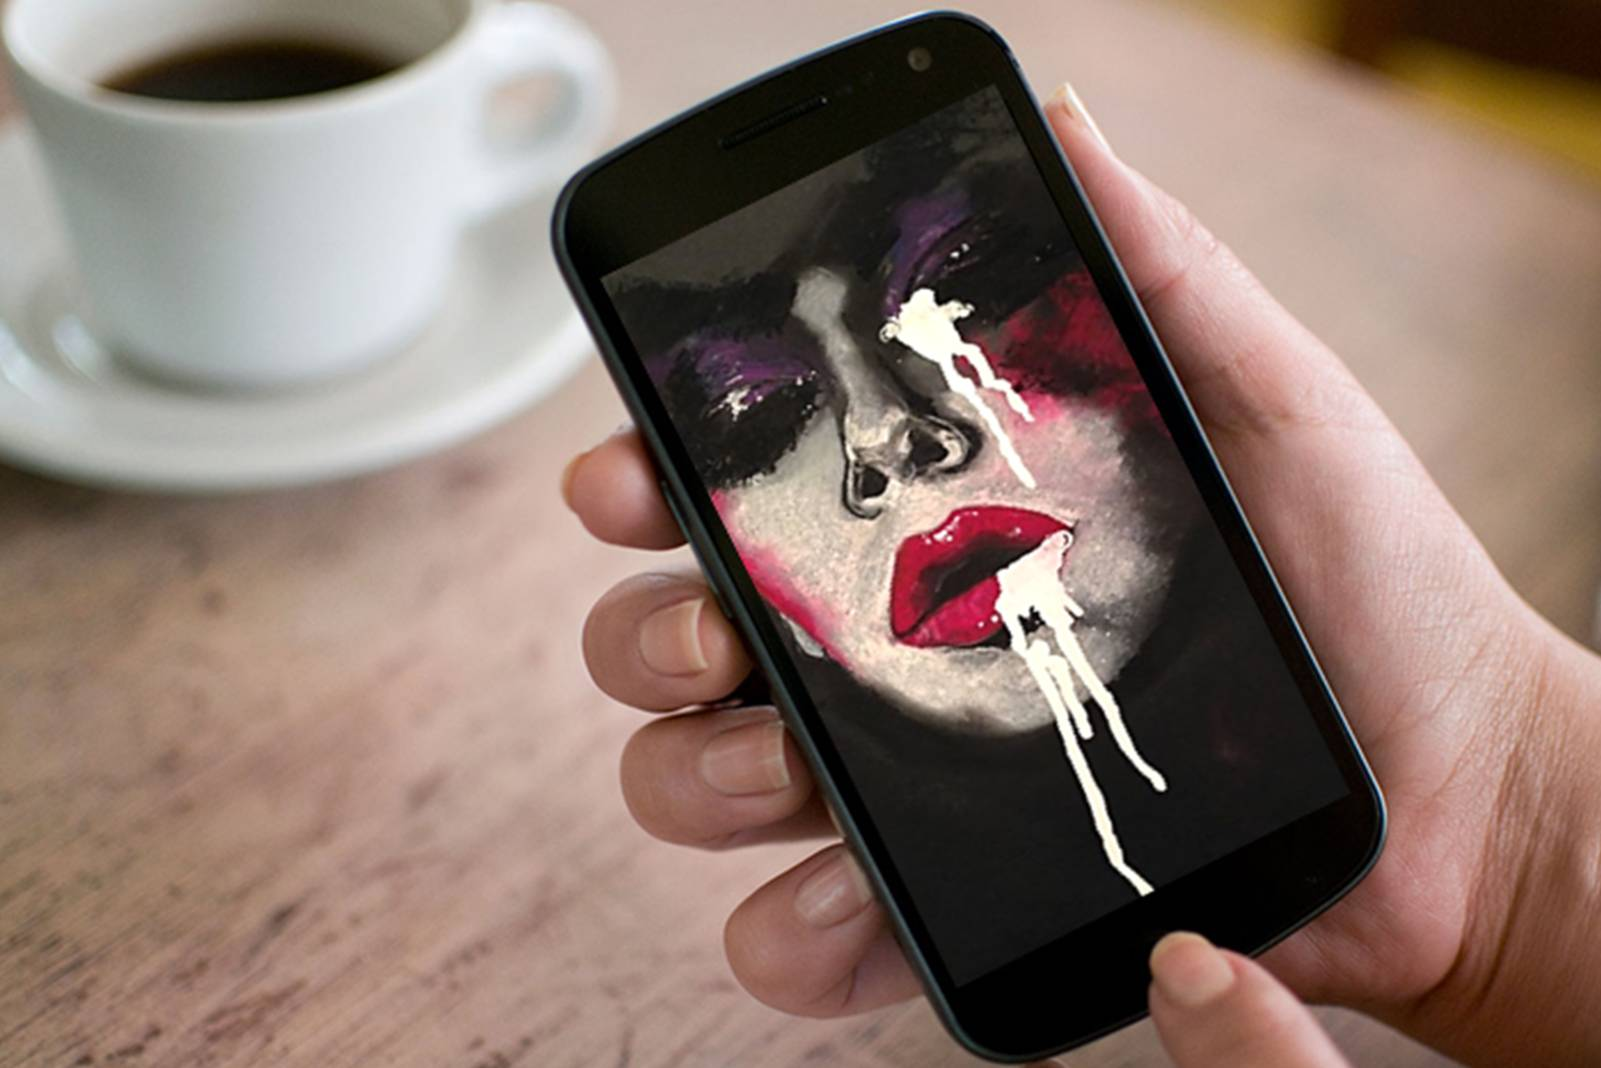 painting on mobile phone being held by woman